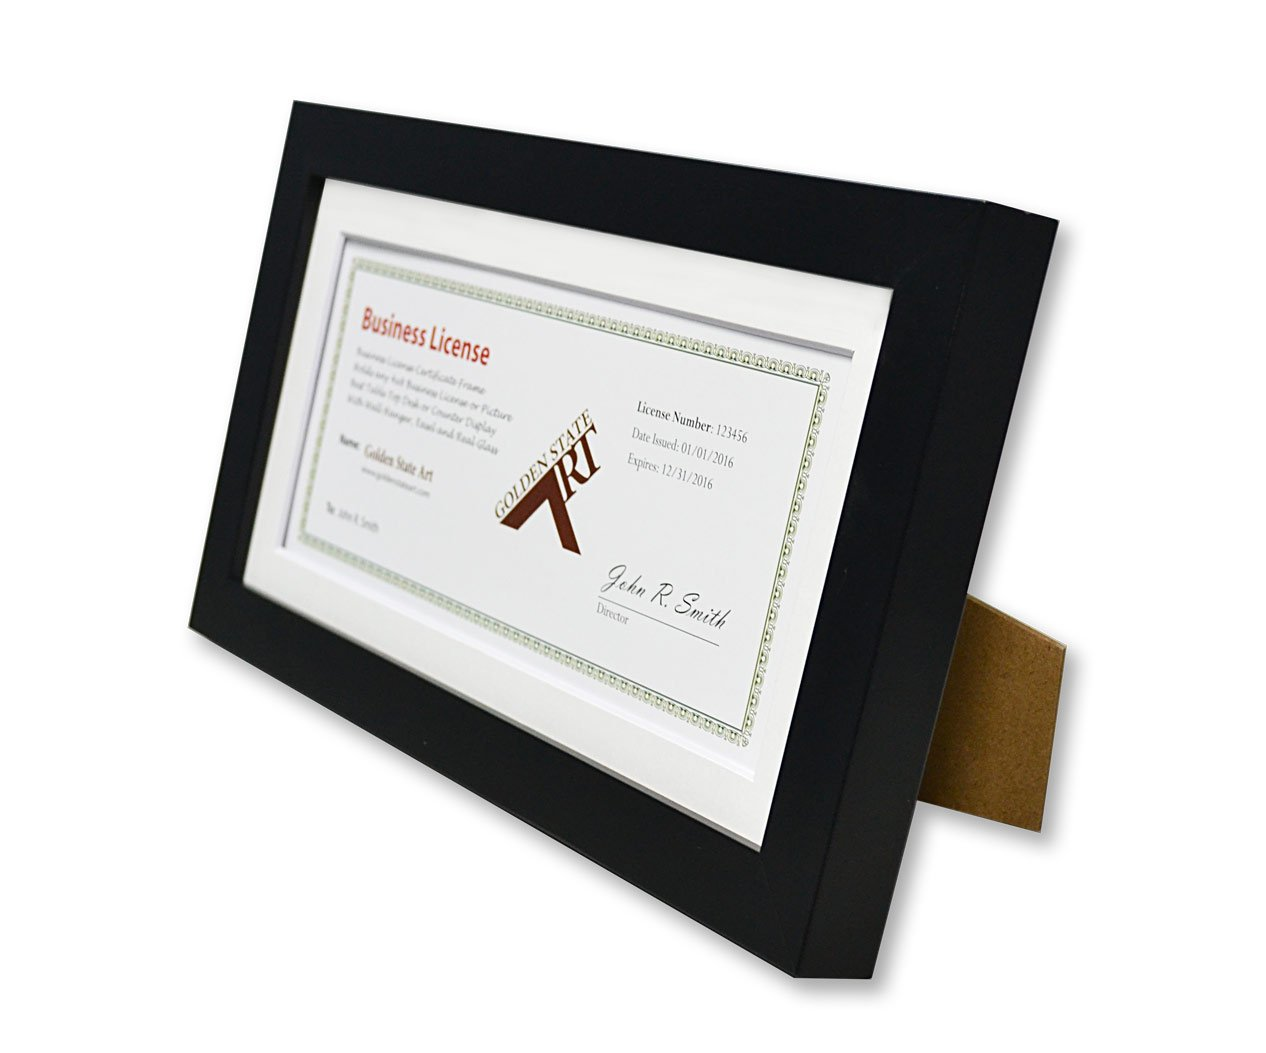 Golden State Art 5x10 Wood Frame for 4x9 Business License Certificate with White Mat & Table-top Display, Black by Golden State Art (Image #2)